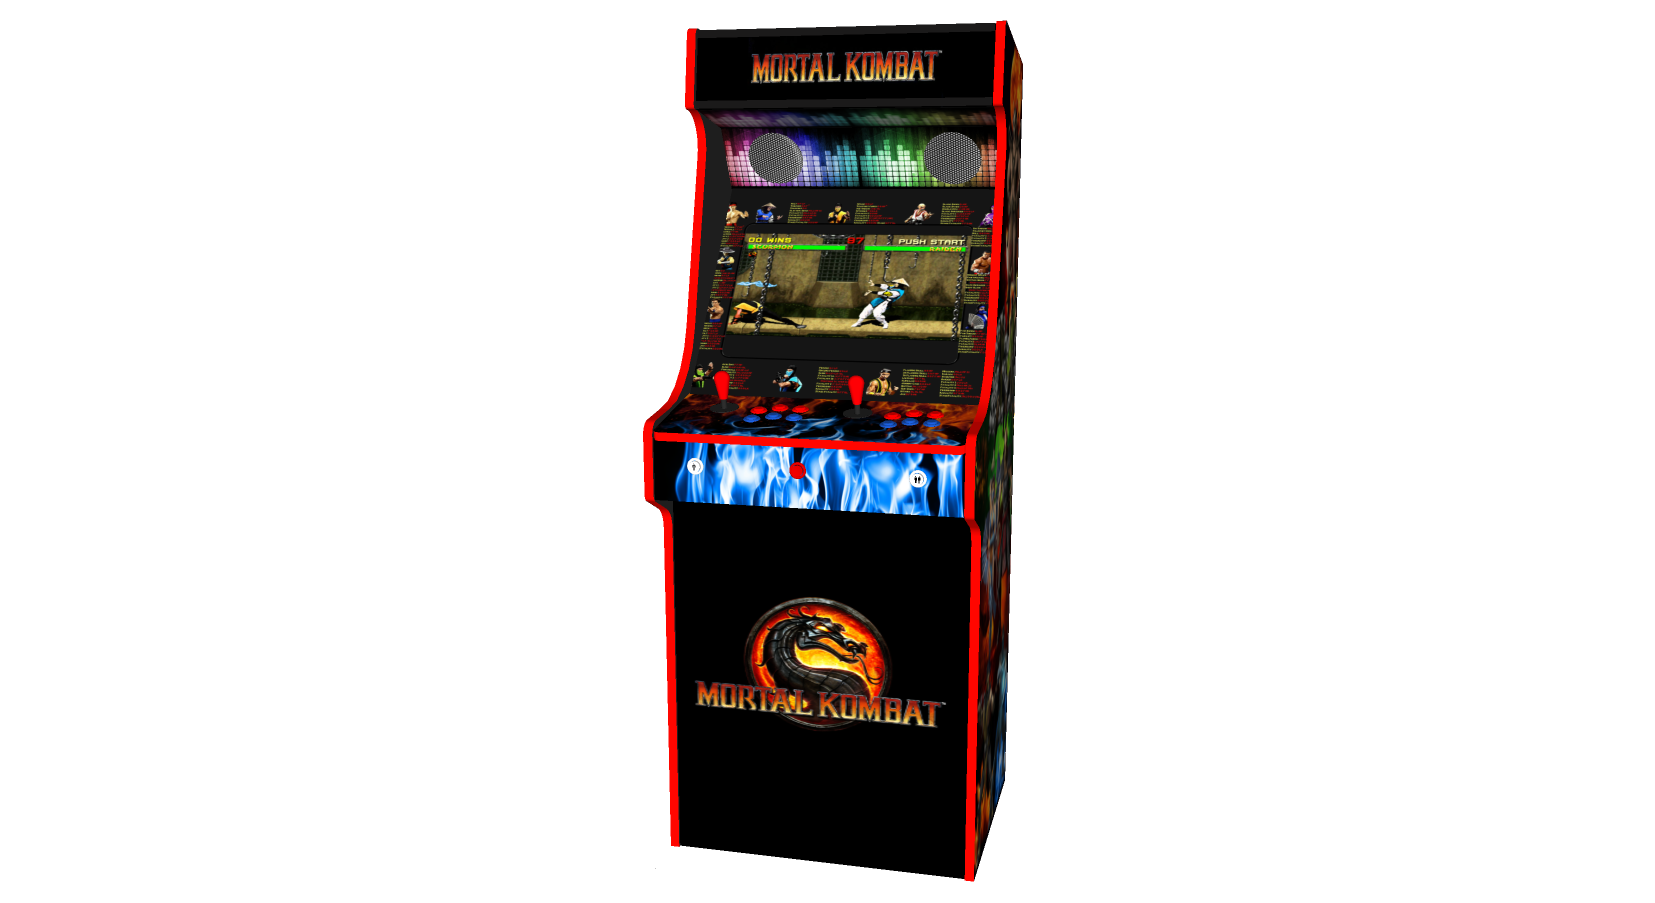 Classic Upright Arcade Machine - Mortal Kombat theme - Middle v3.1